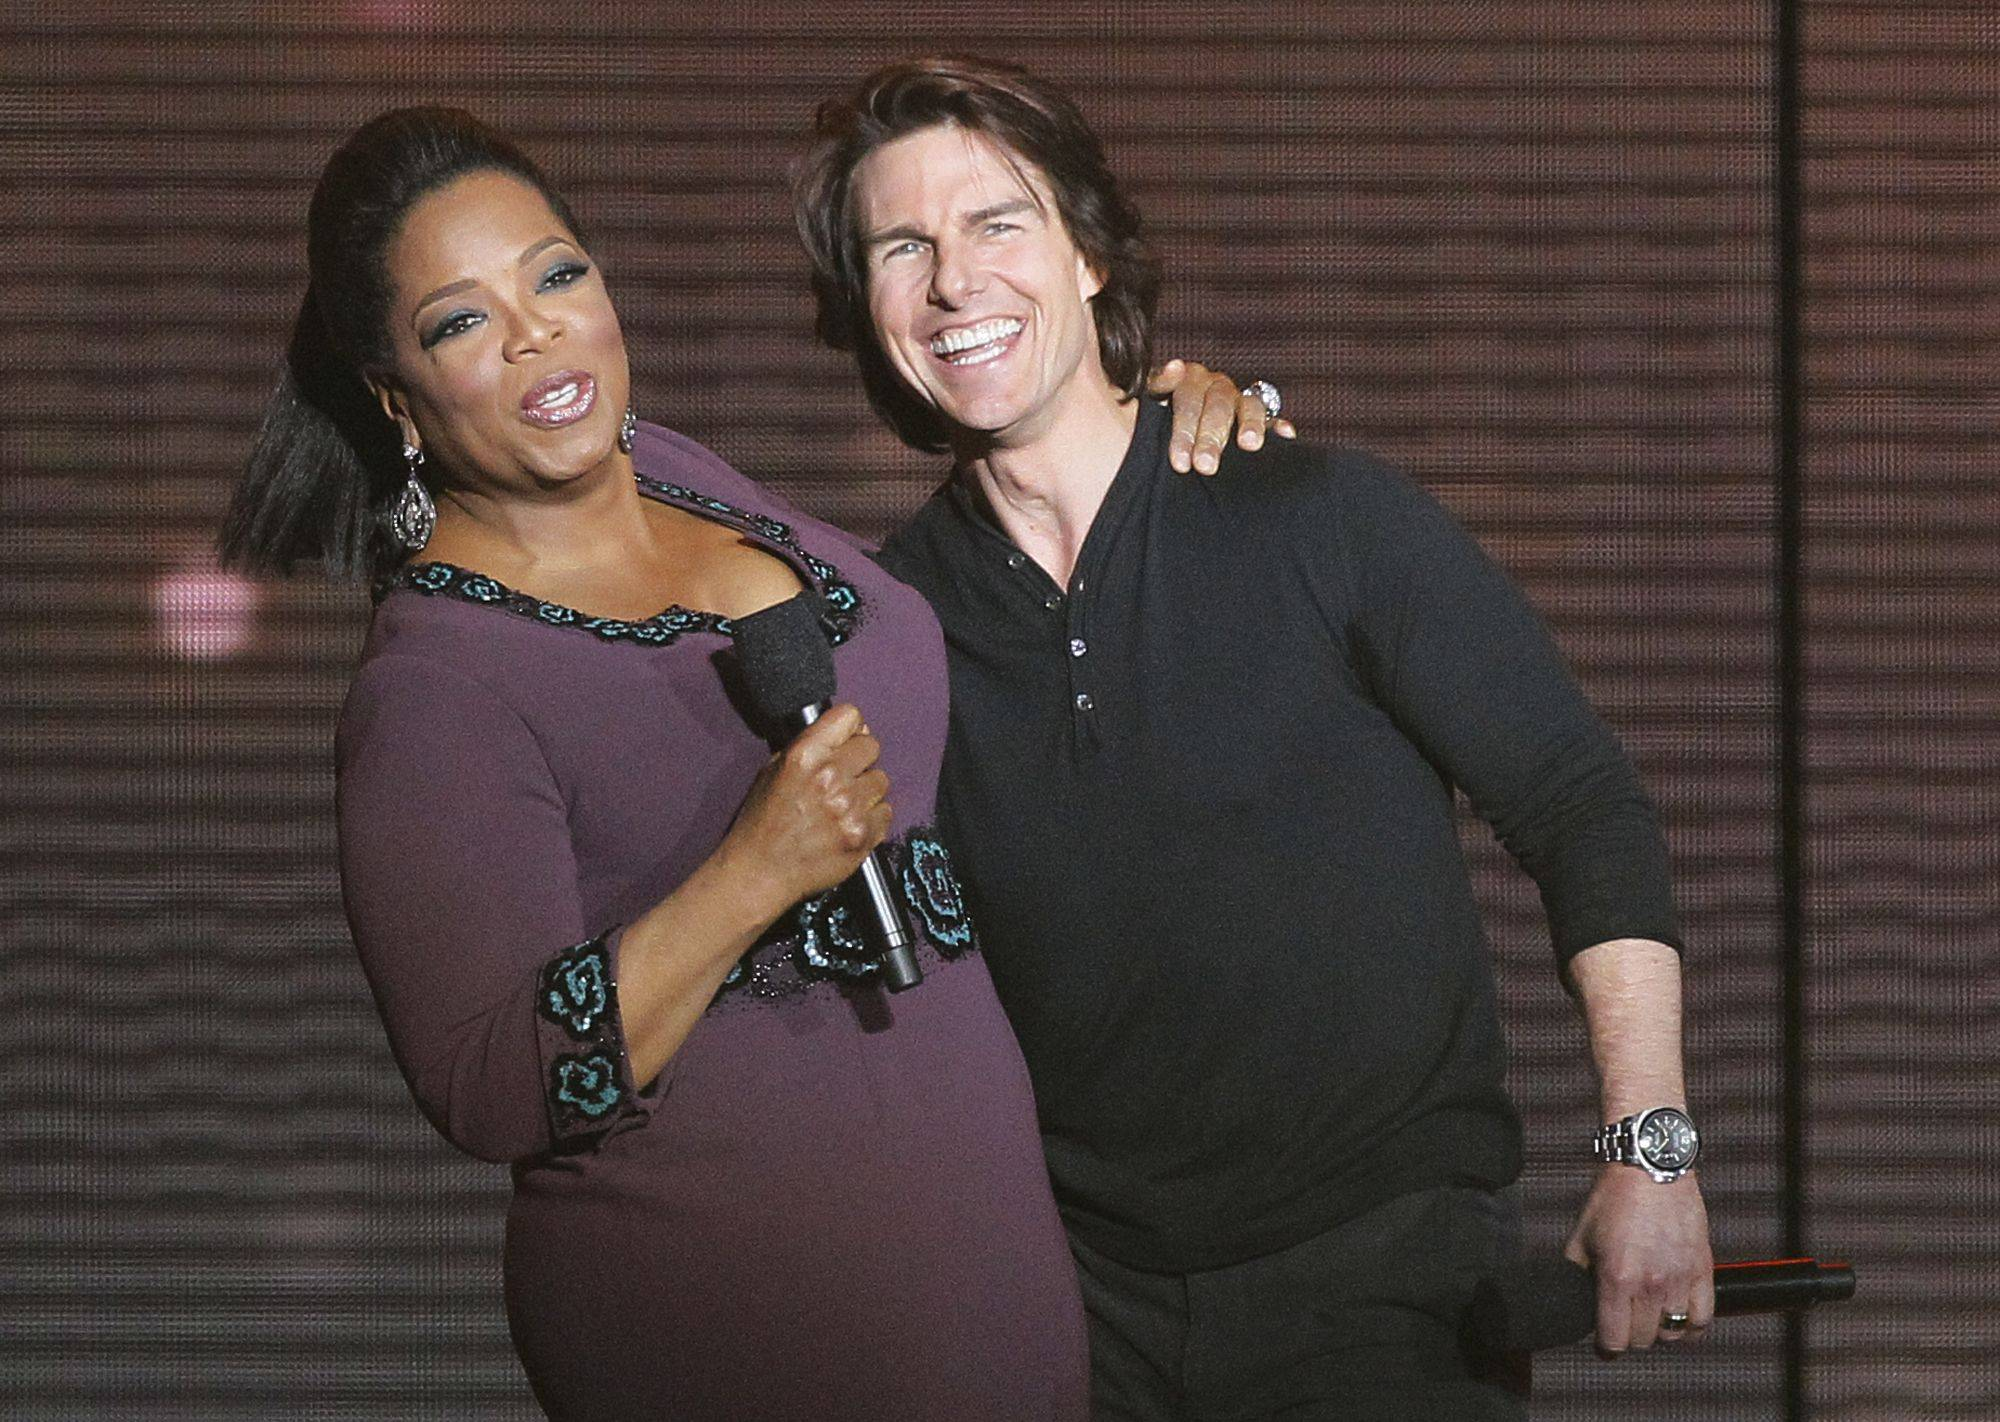 Tom Cruise, right, appears with Oprah Winfrey.